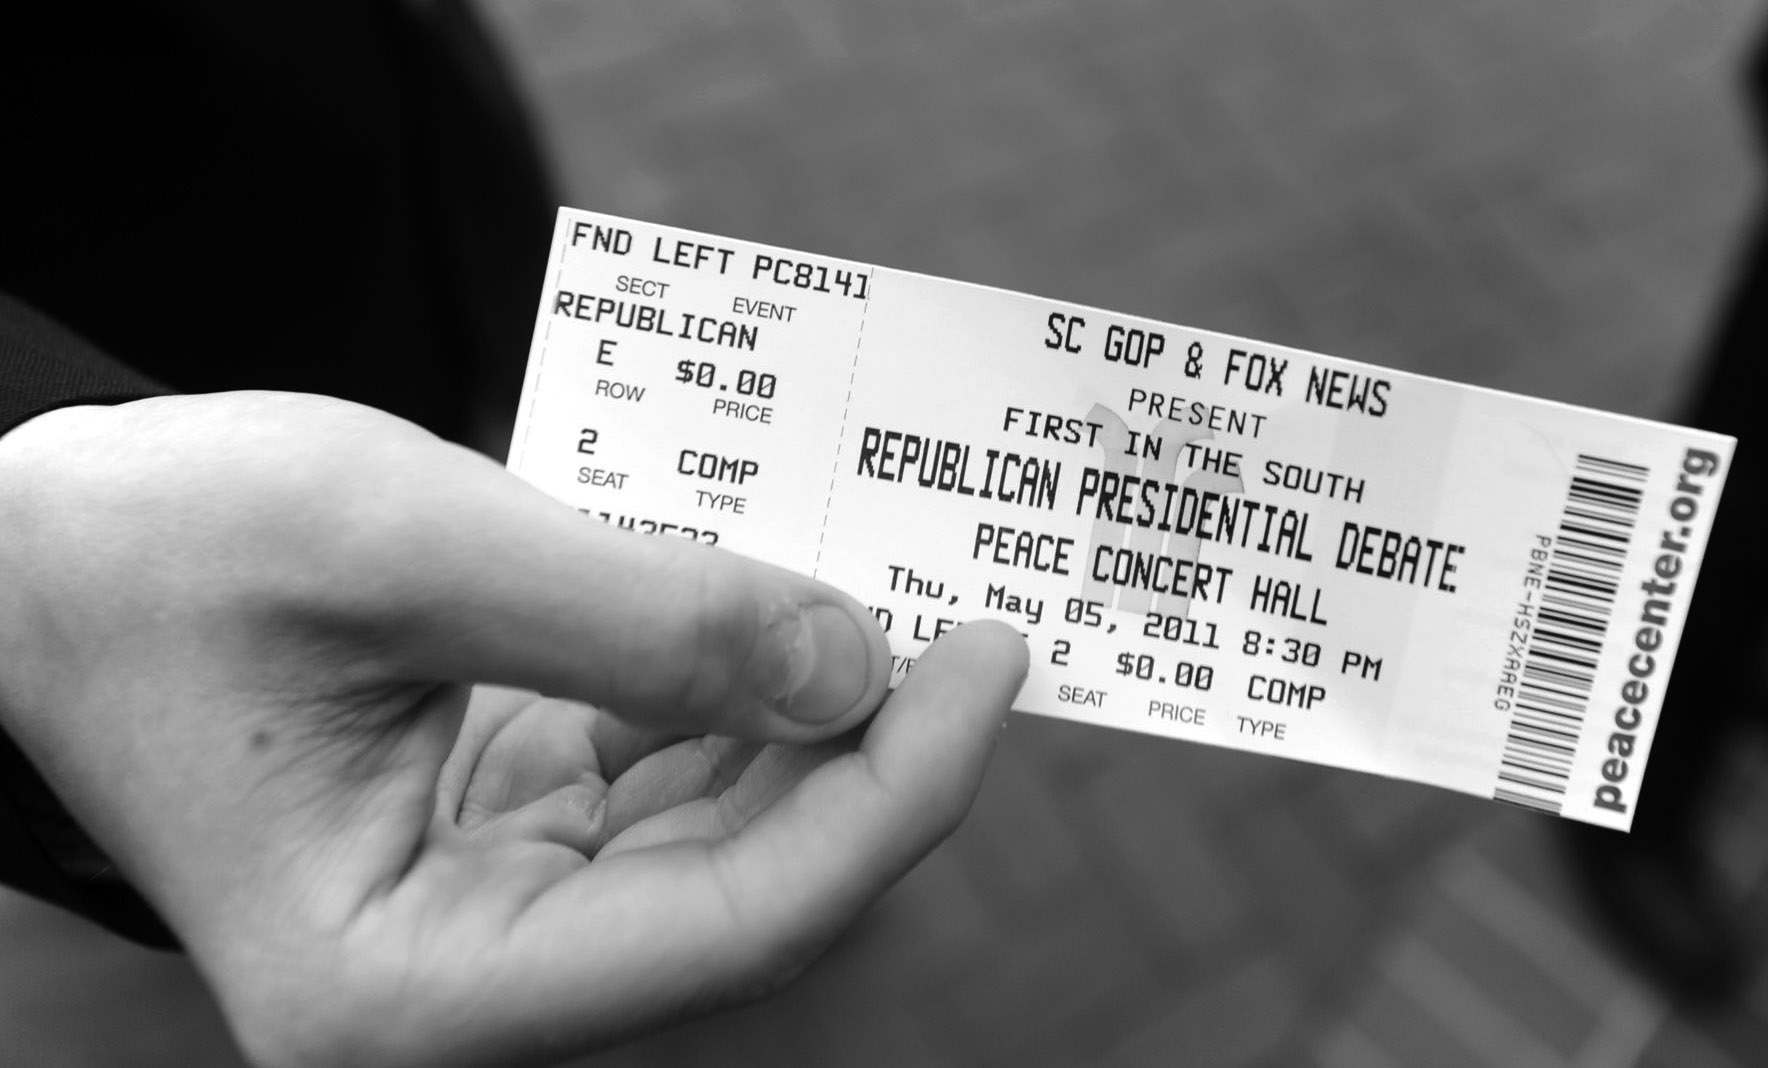 A ticket for the South Carolina republican presidential debate is presented at the Peace Center in Greenville, S.C.